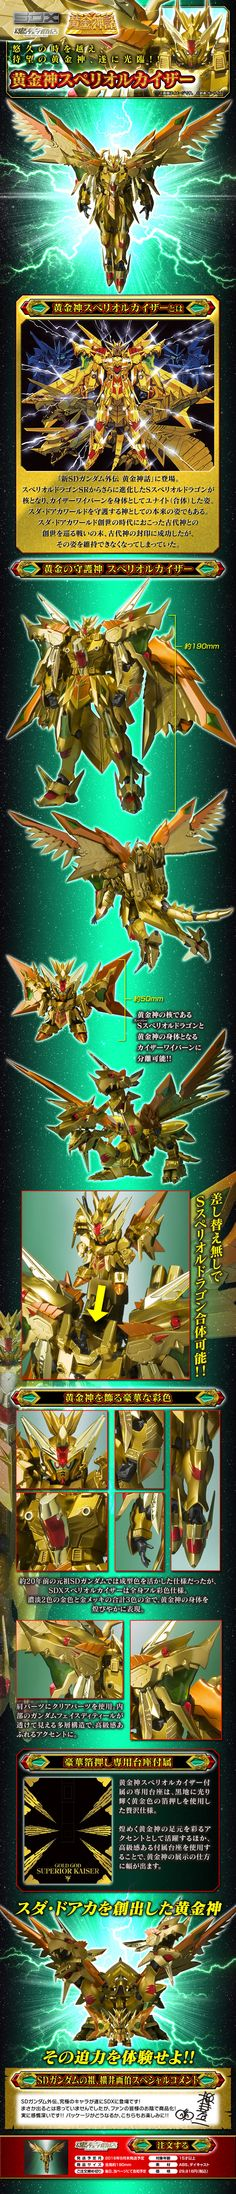 P-Bandai Tamashii Exclusive SDX Gold God Superior Kaiser Gundam: Full Official Promo Posters + No.10 Big Size Images, Info Release http://www.gunjap.net/site/?p=291434